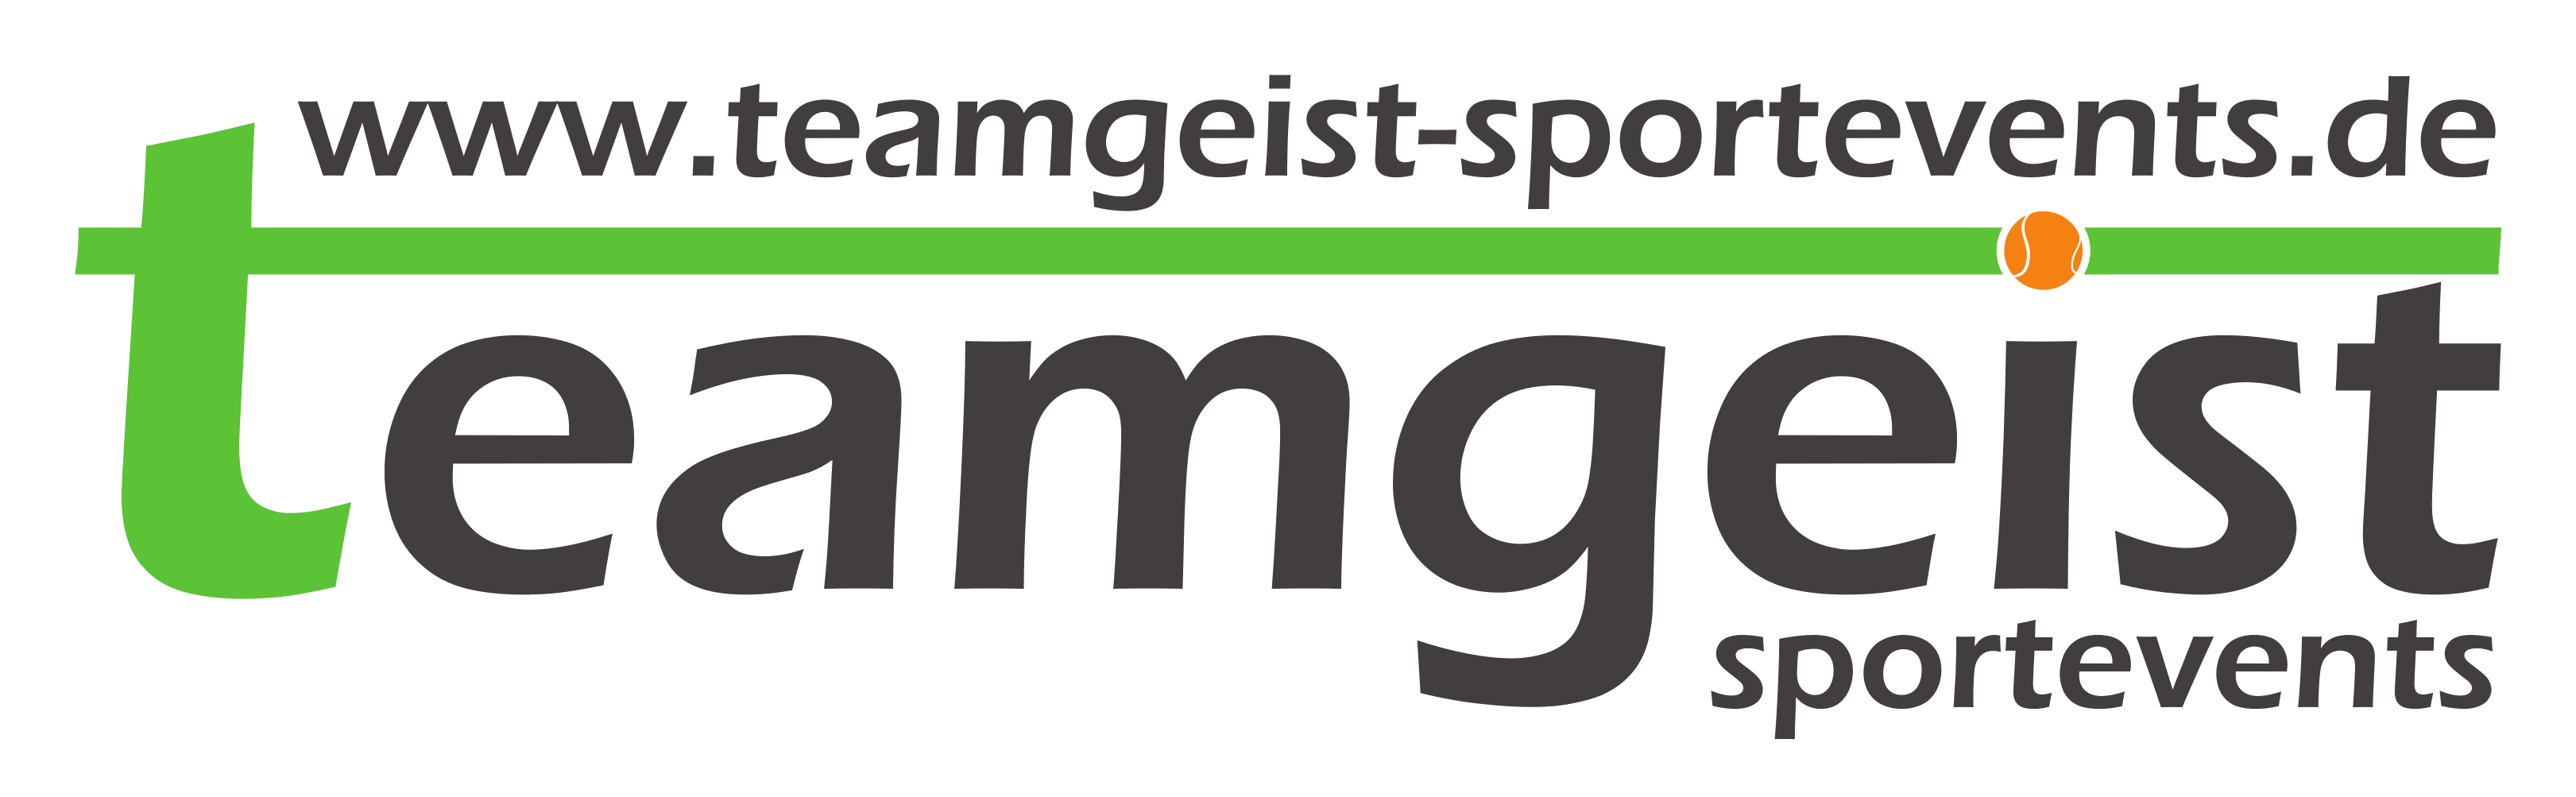 Teamgeist Sportevents